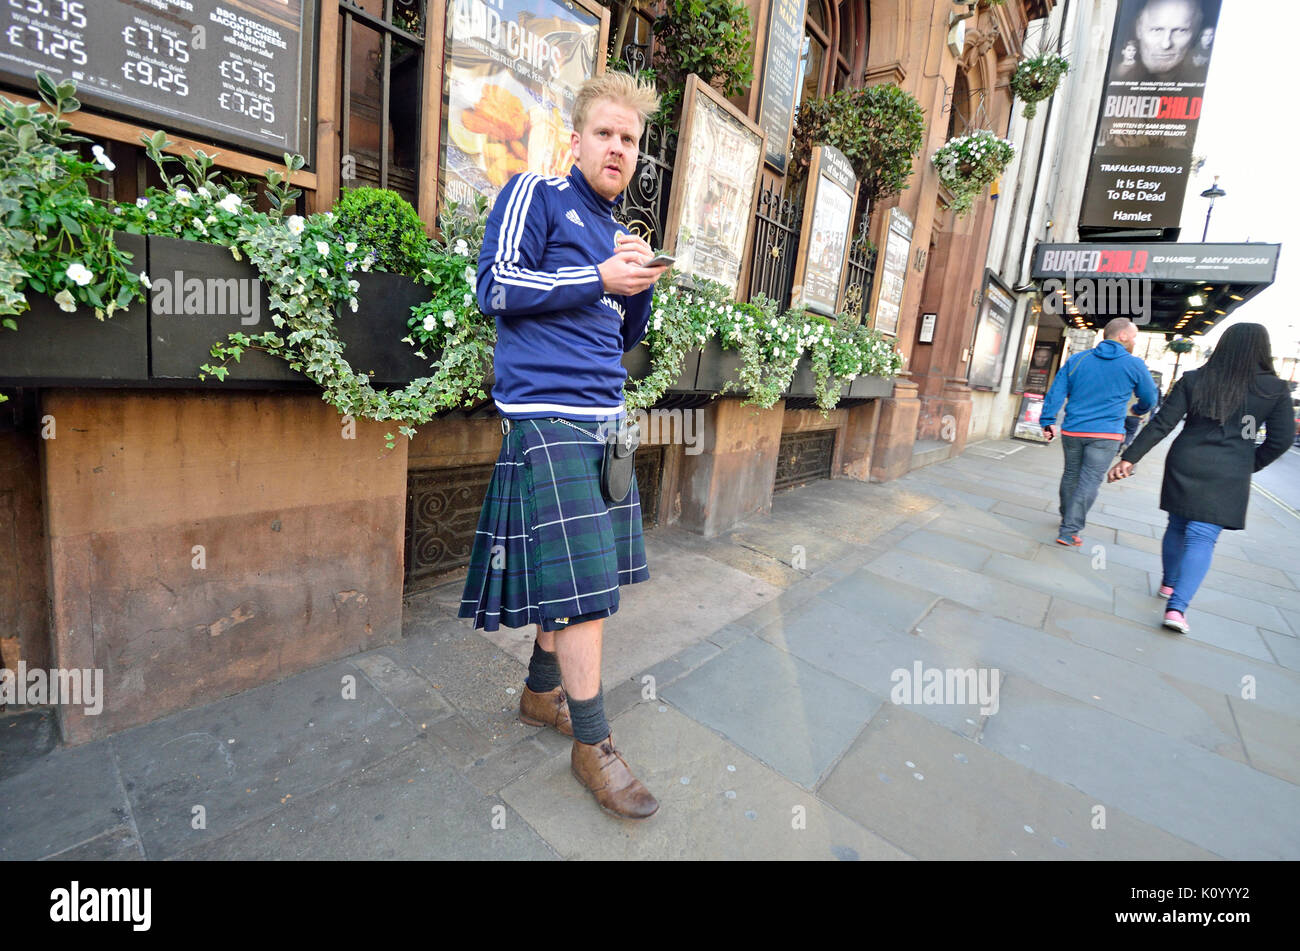 London, England, UK. Man wearing a kilt in Whitehall - Stock Image